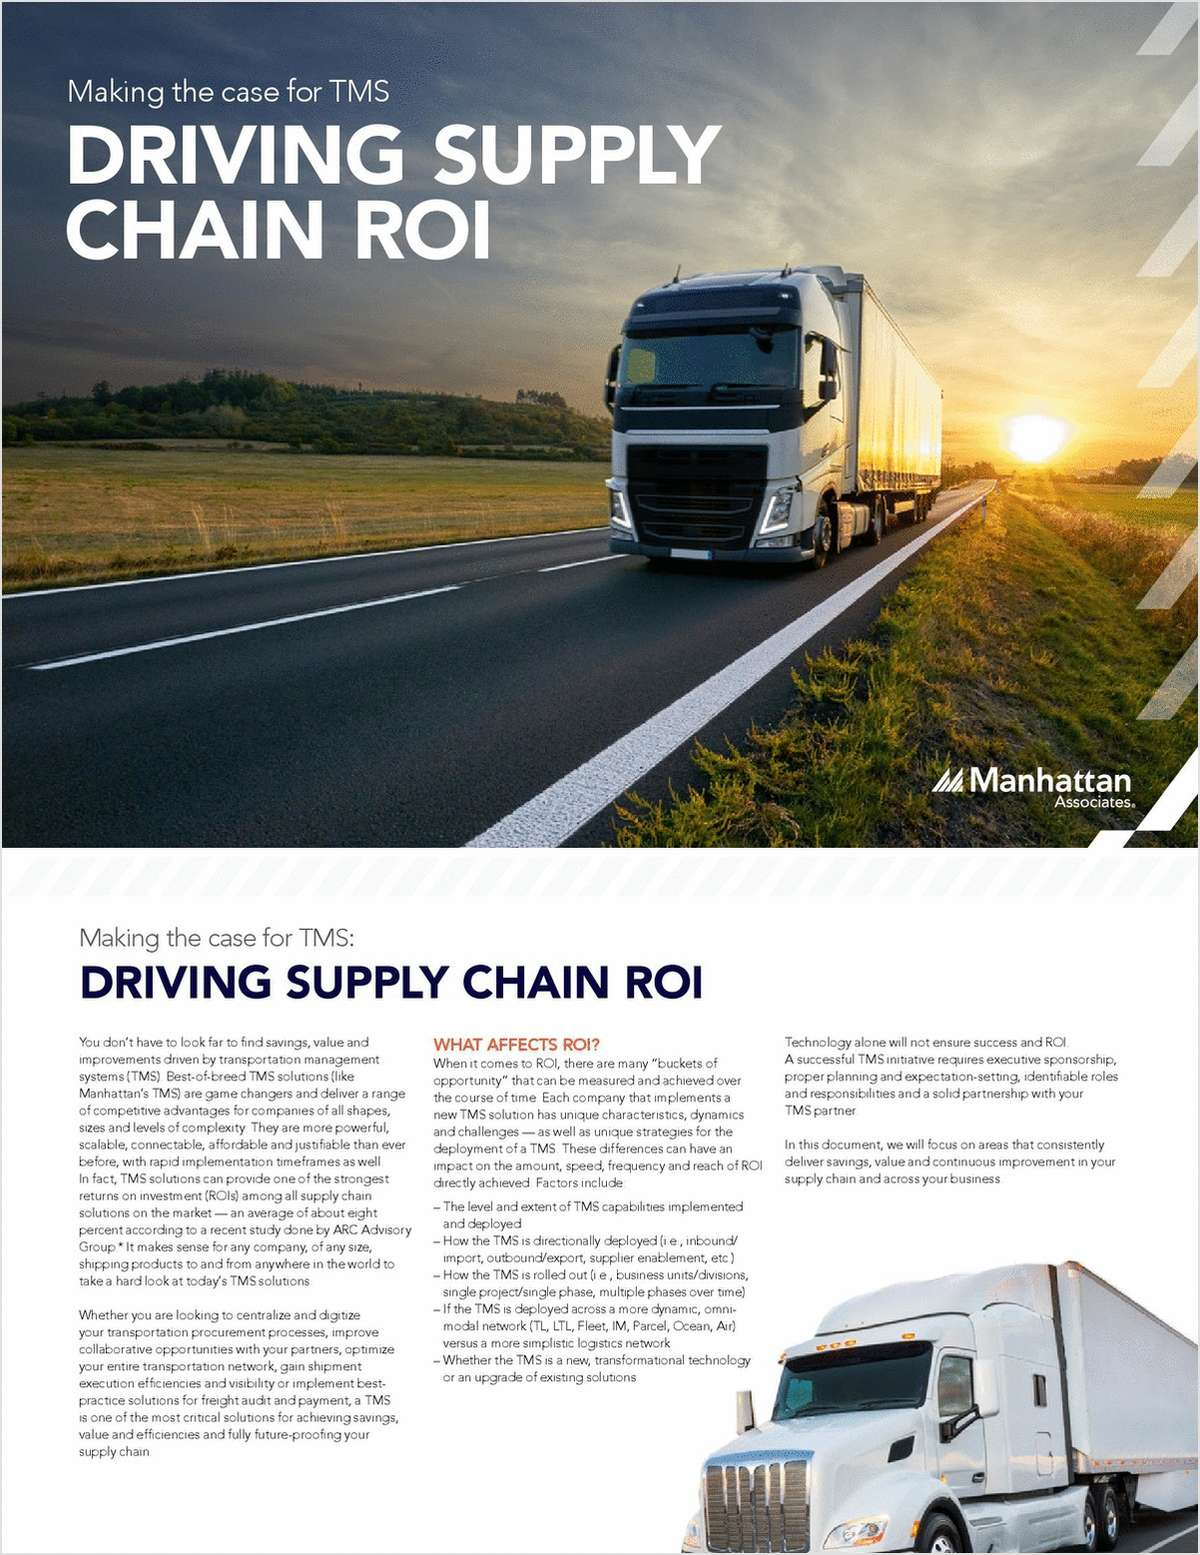 How to Drive Supply Chain ROI